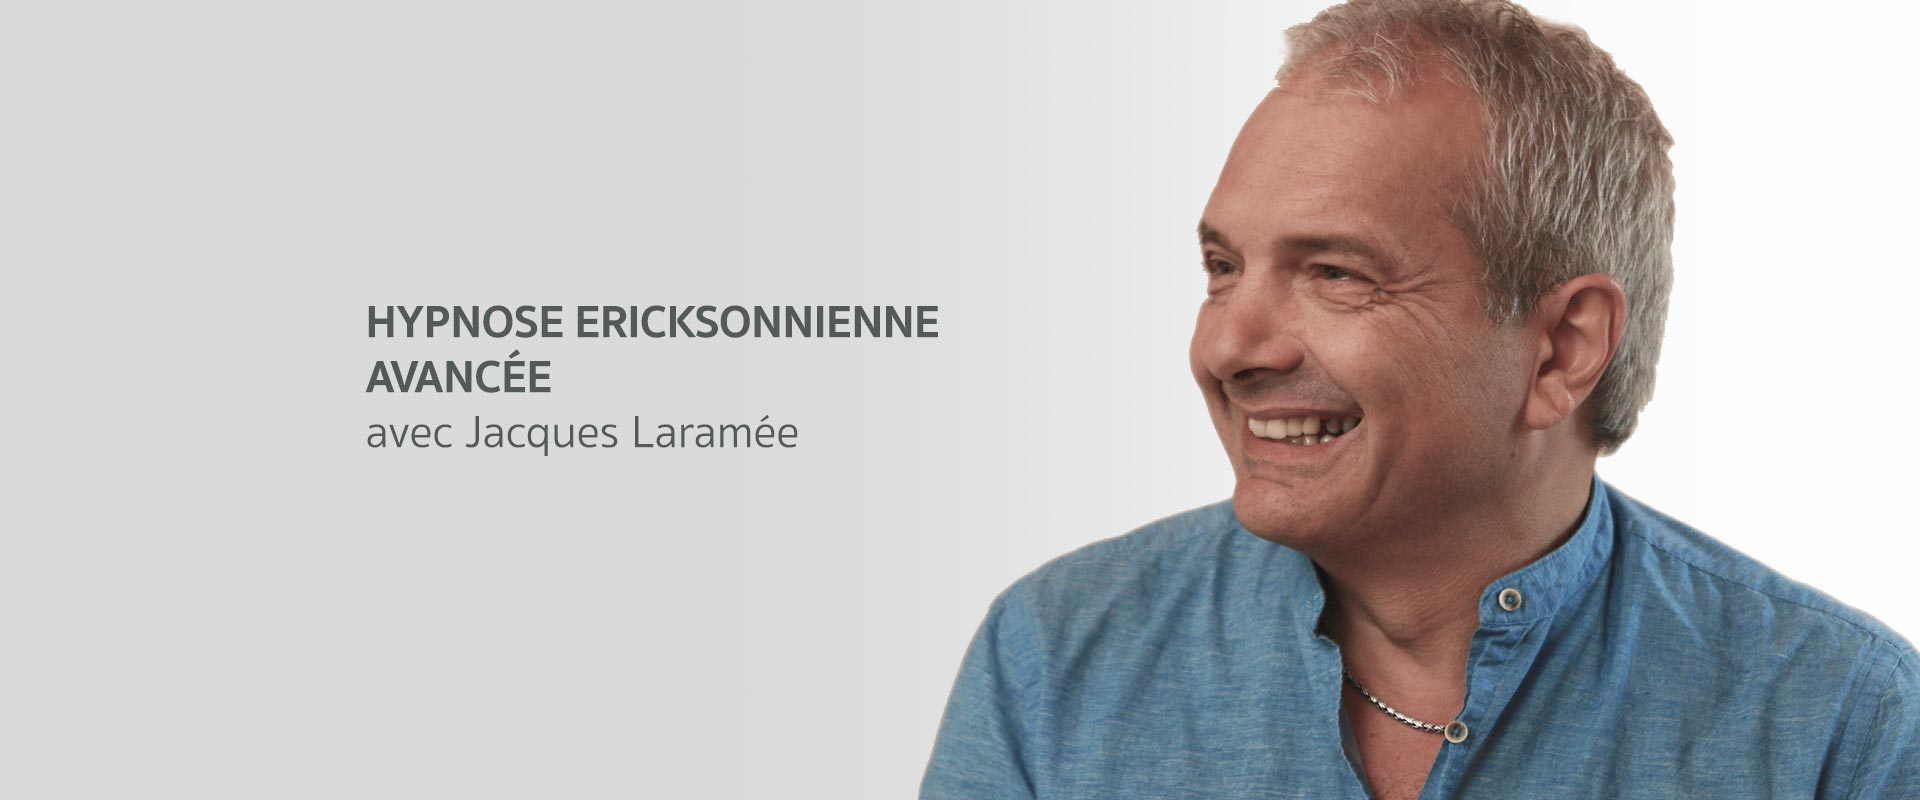 hypnose-ericksonnienne-avancee-formation-continue-jacques-laramee